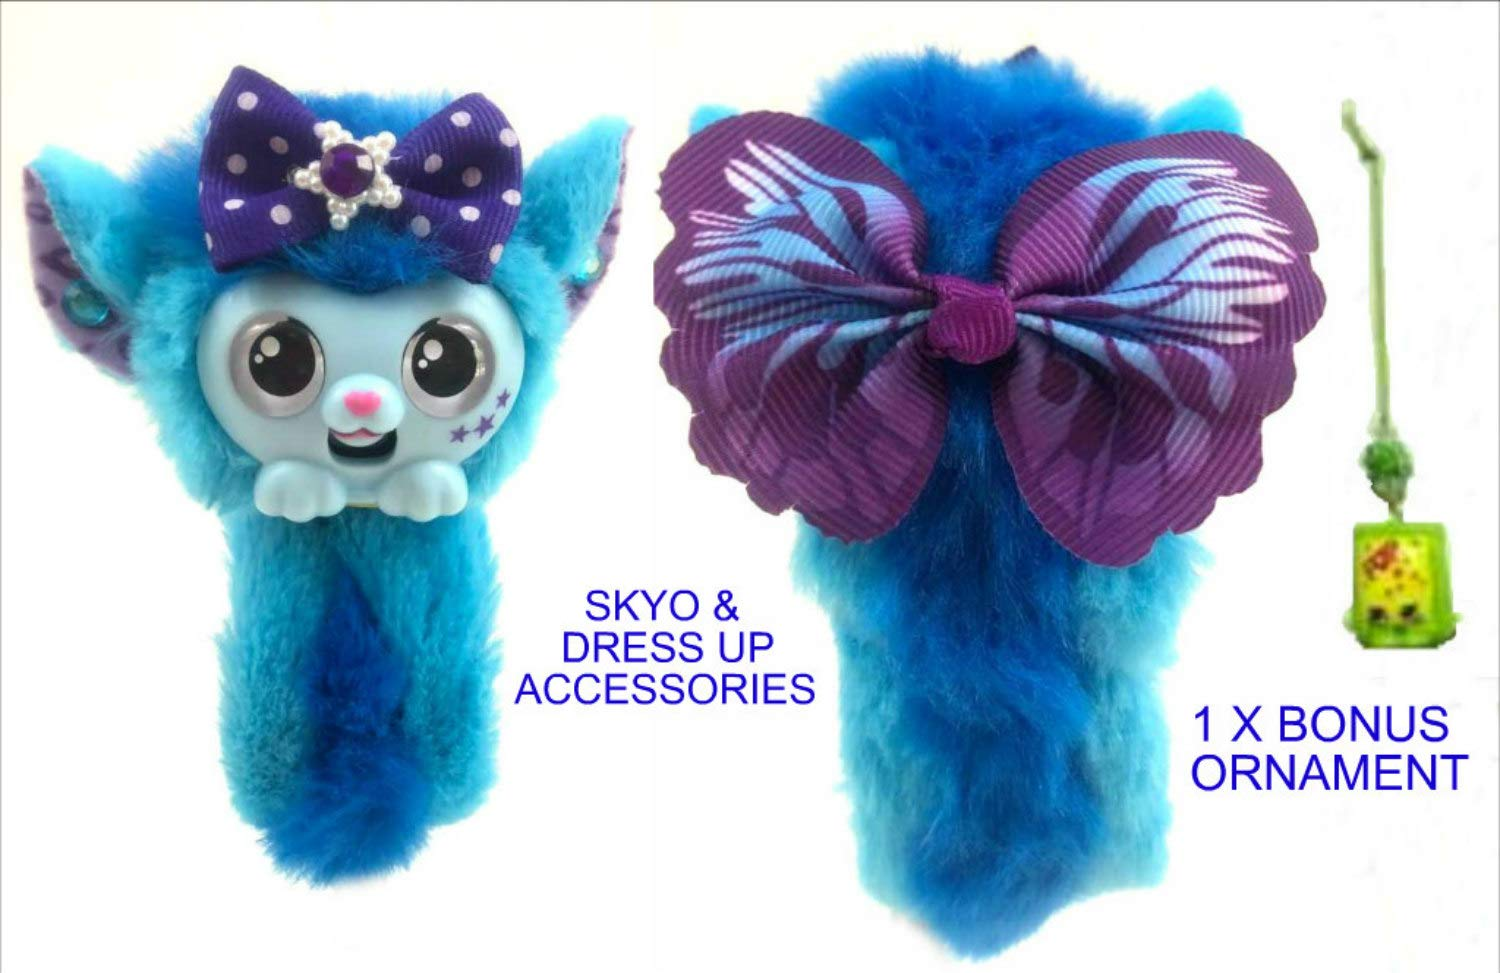 Twisted 2 Perfection Little Live Wrapples with Dress Up Accessories /& Bonus Ornament Little Live Pets /& Twisted 2 Perfection Gift Bundle Luna Wrapples